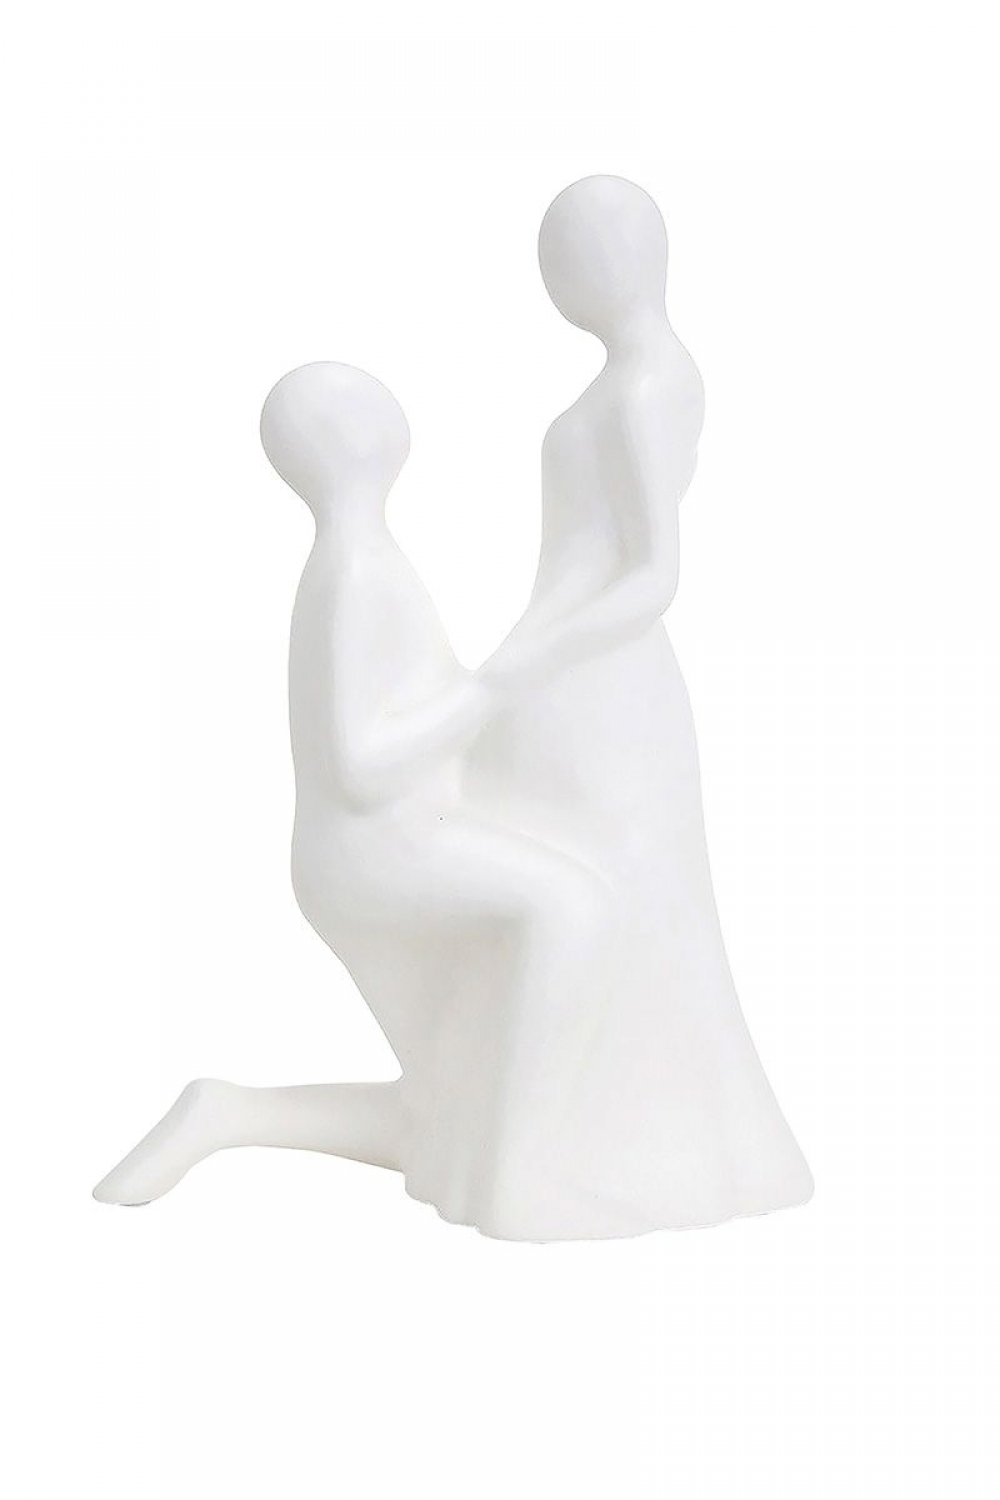 Figurina decorativa Only with you H30cm imagine 2021 insignis.ro